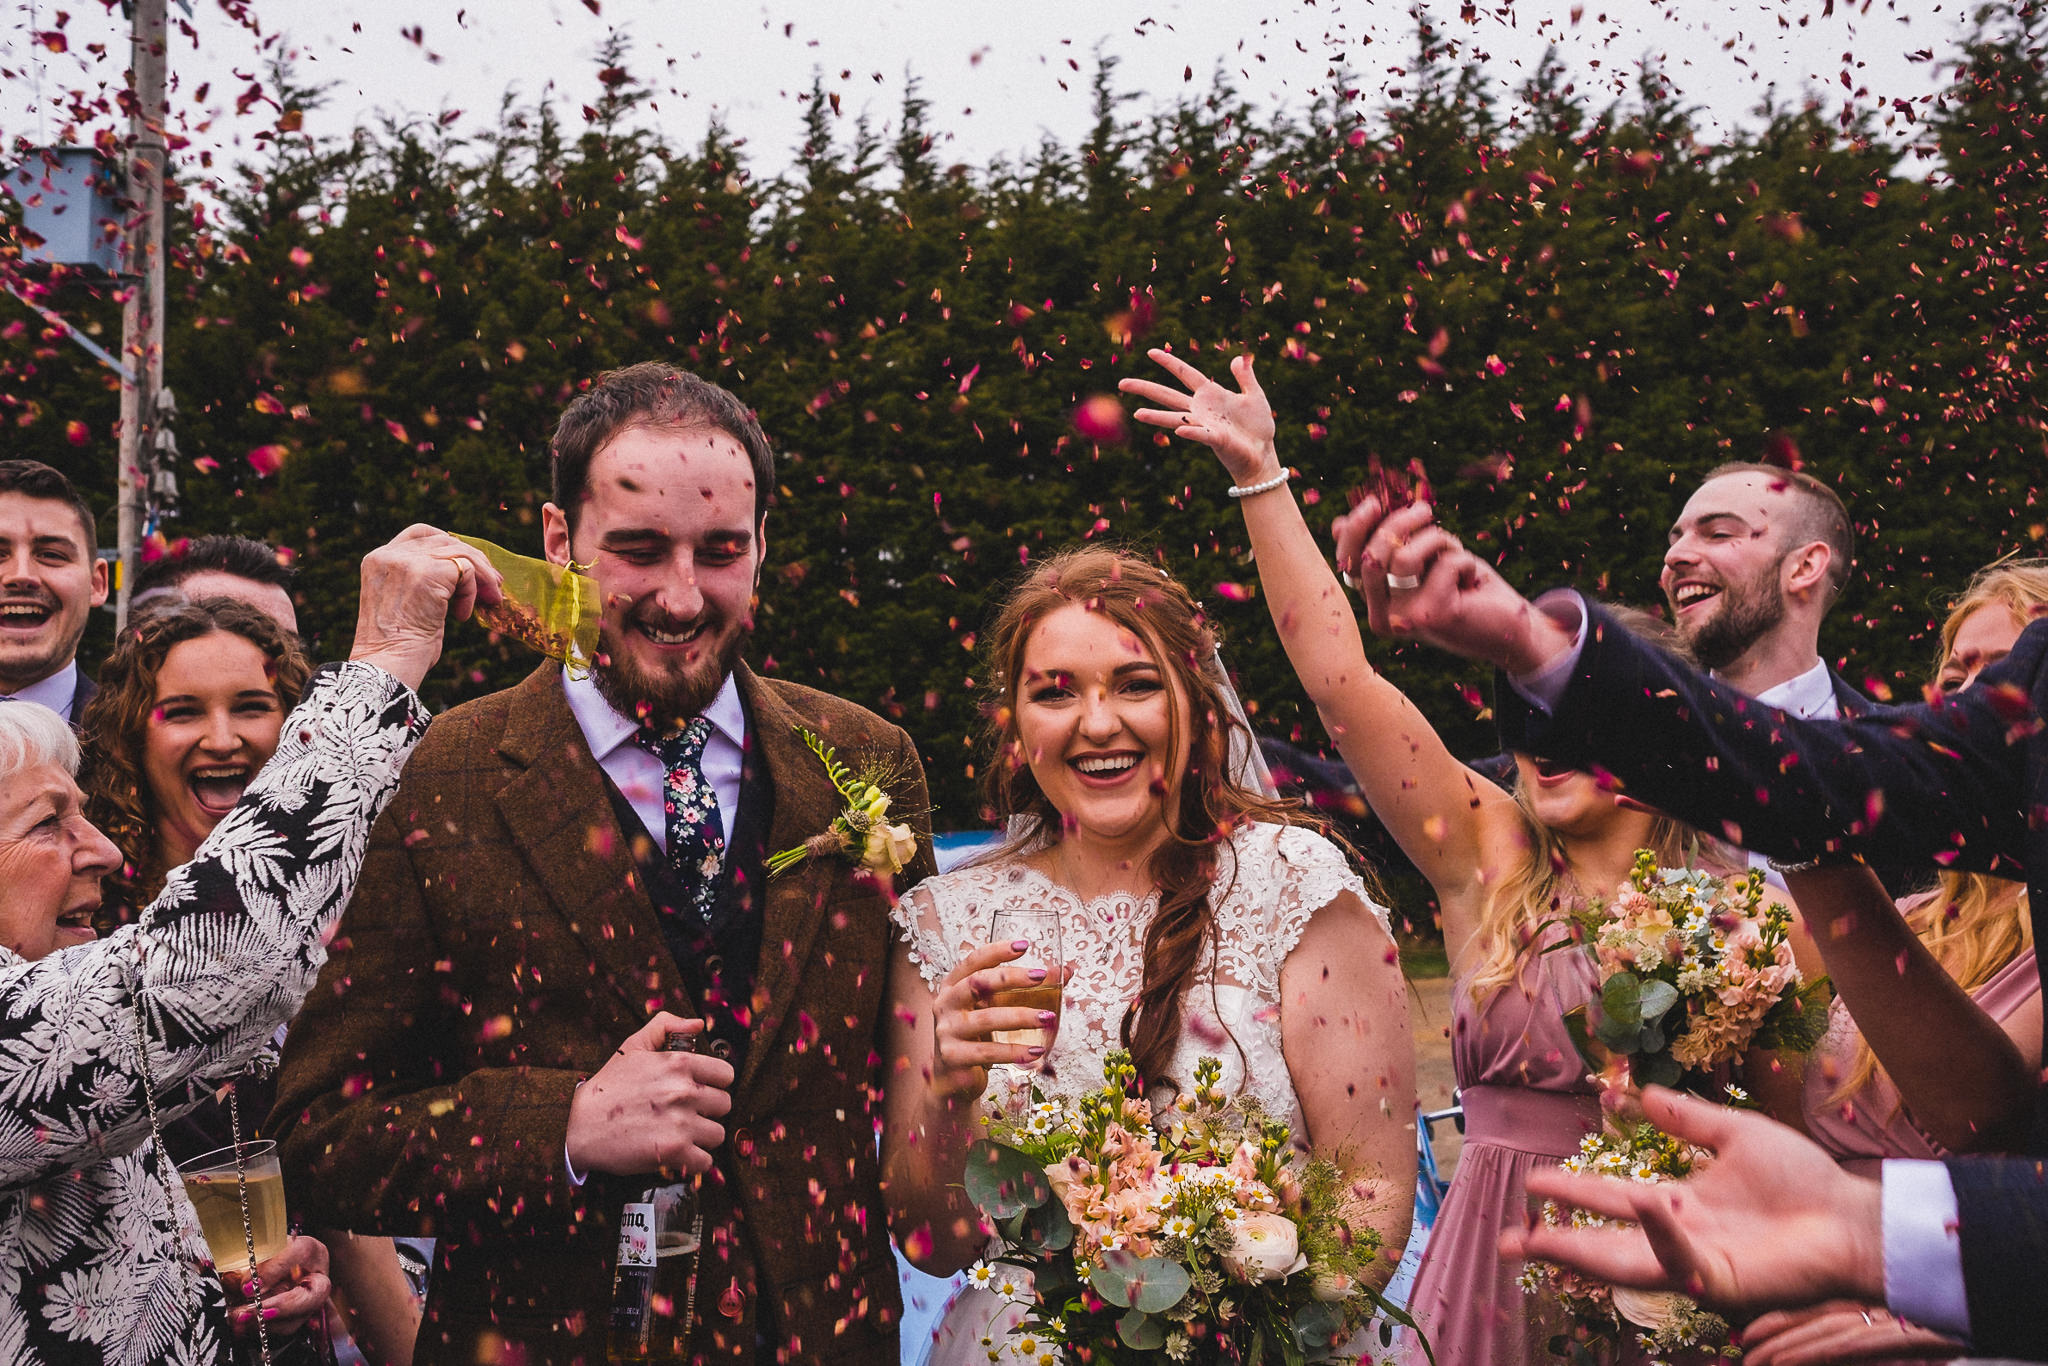 Organic biodegradable confetti being thrown over alternative bride and groom